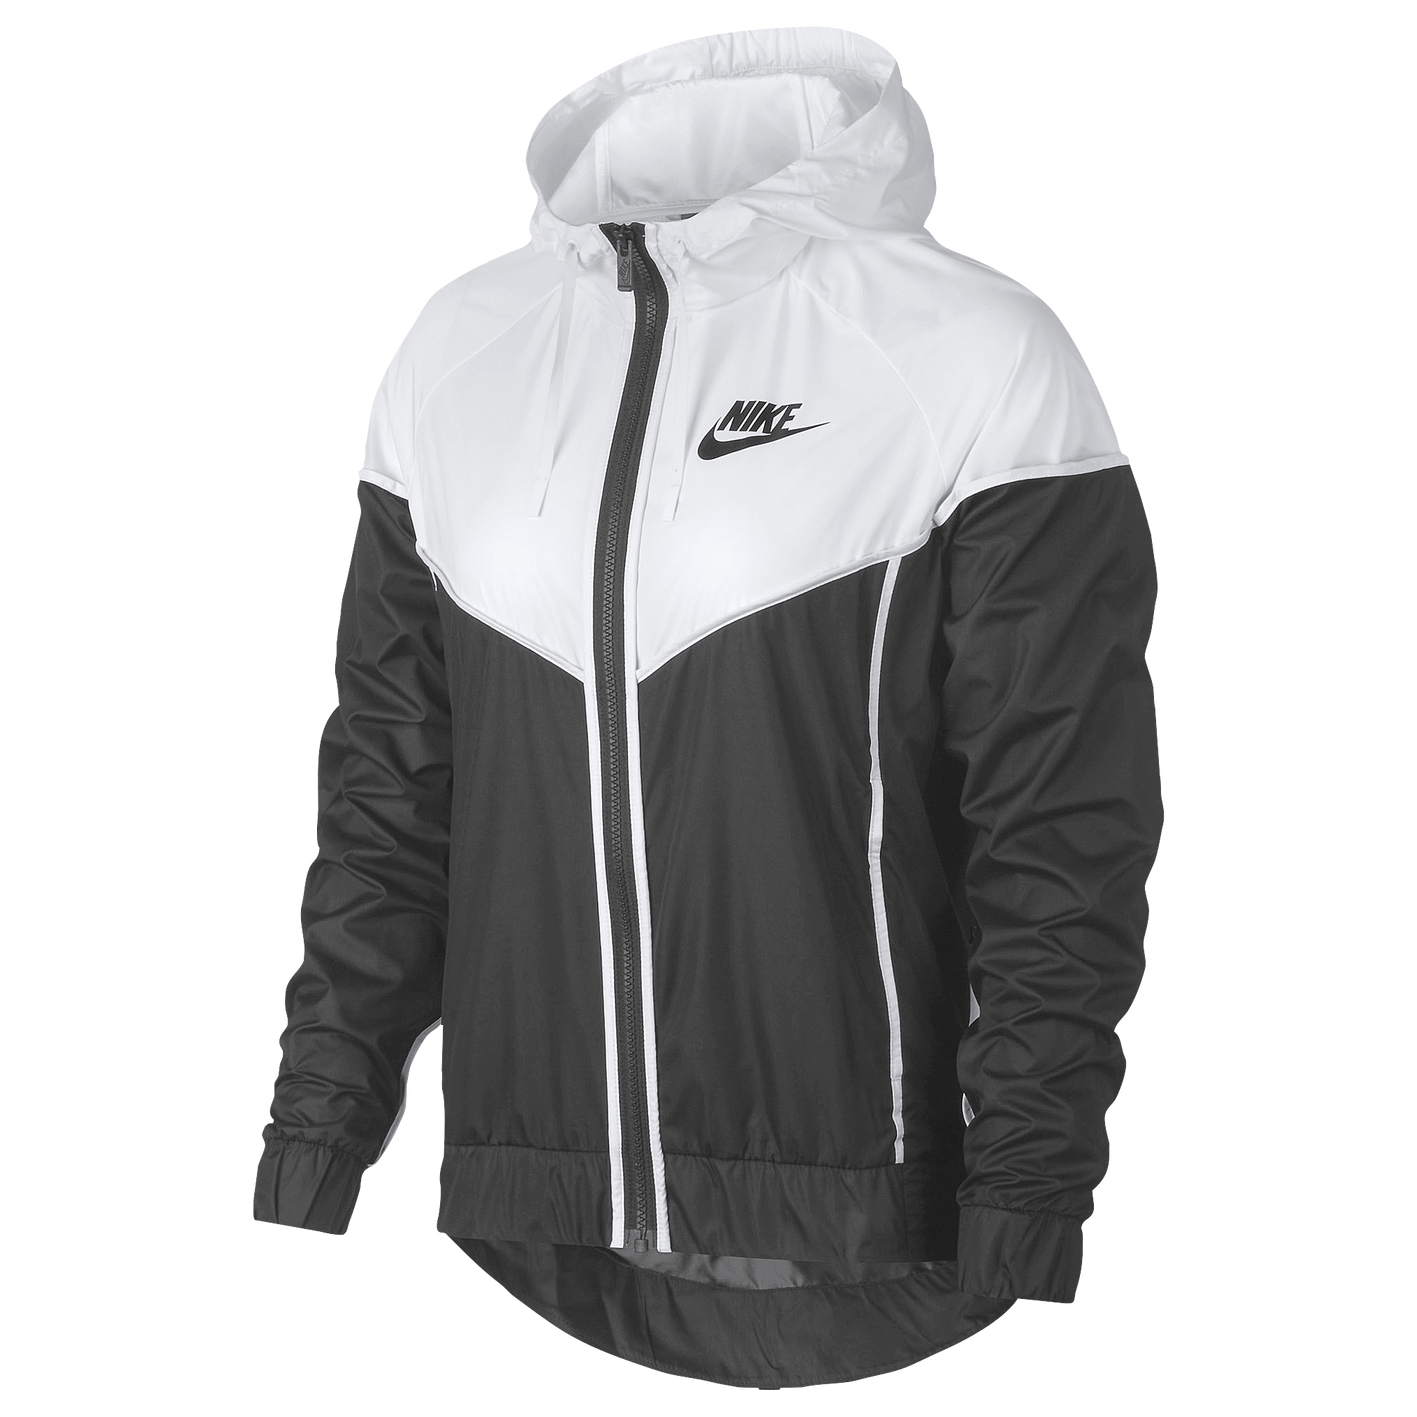 b1a956a15177 Nike Windrunner Jacket - Women s - Casual - Clothing - Charcoal White